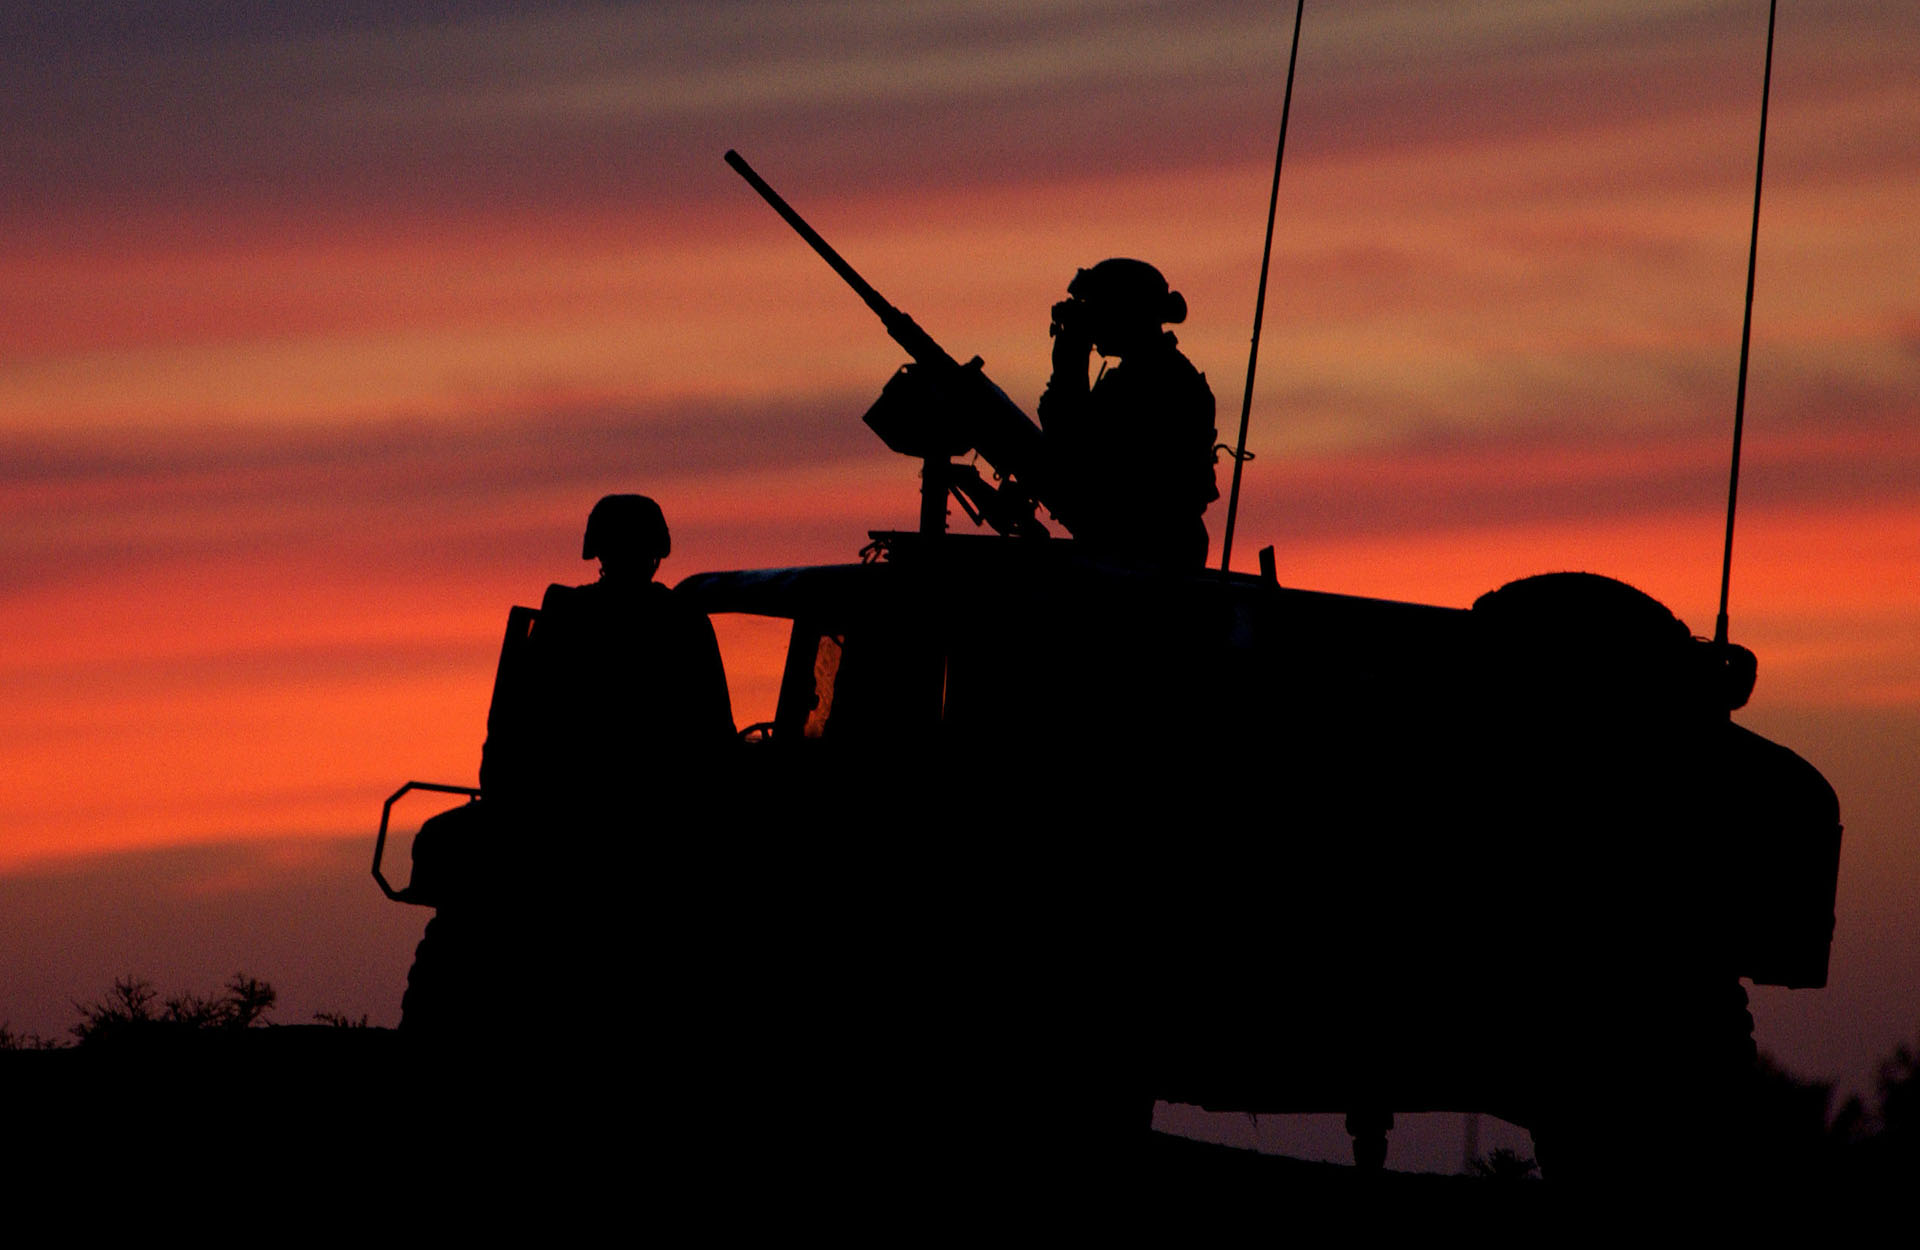 army wallpaper Best Army Silhouetted Wallpapers